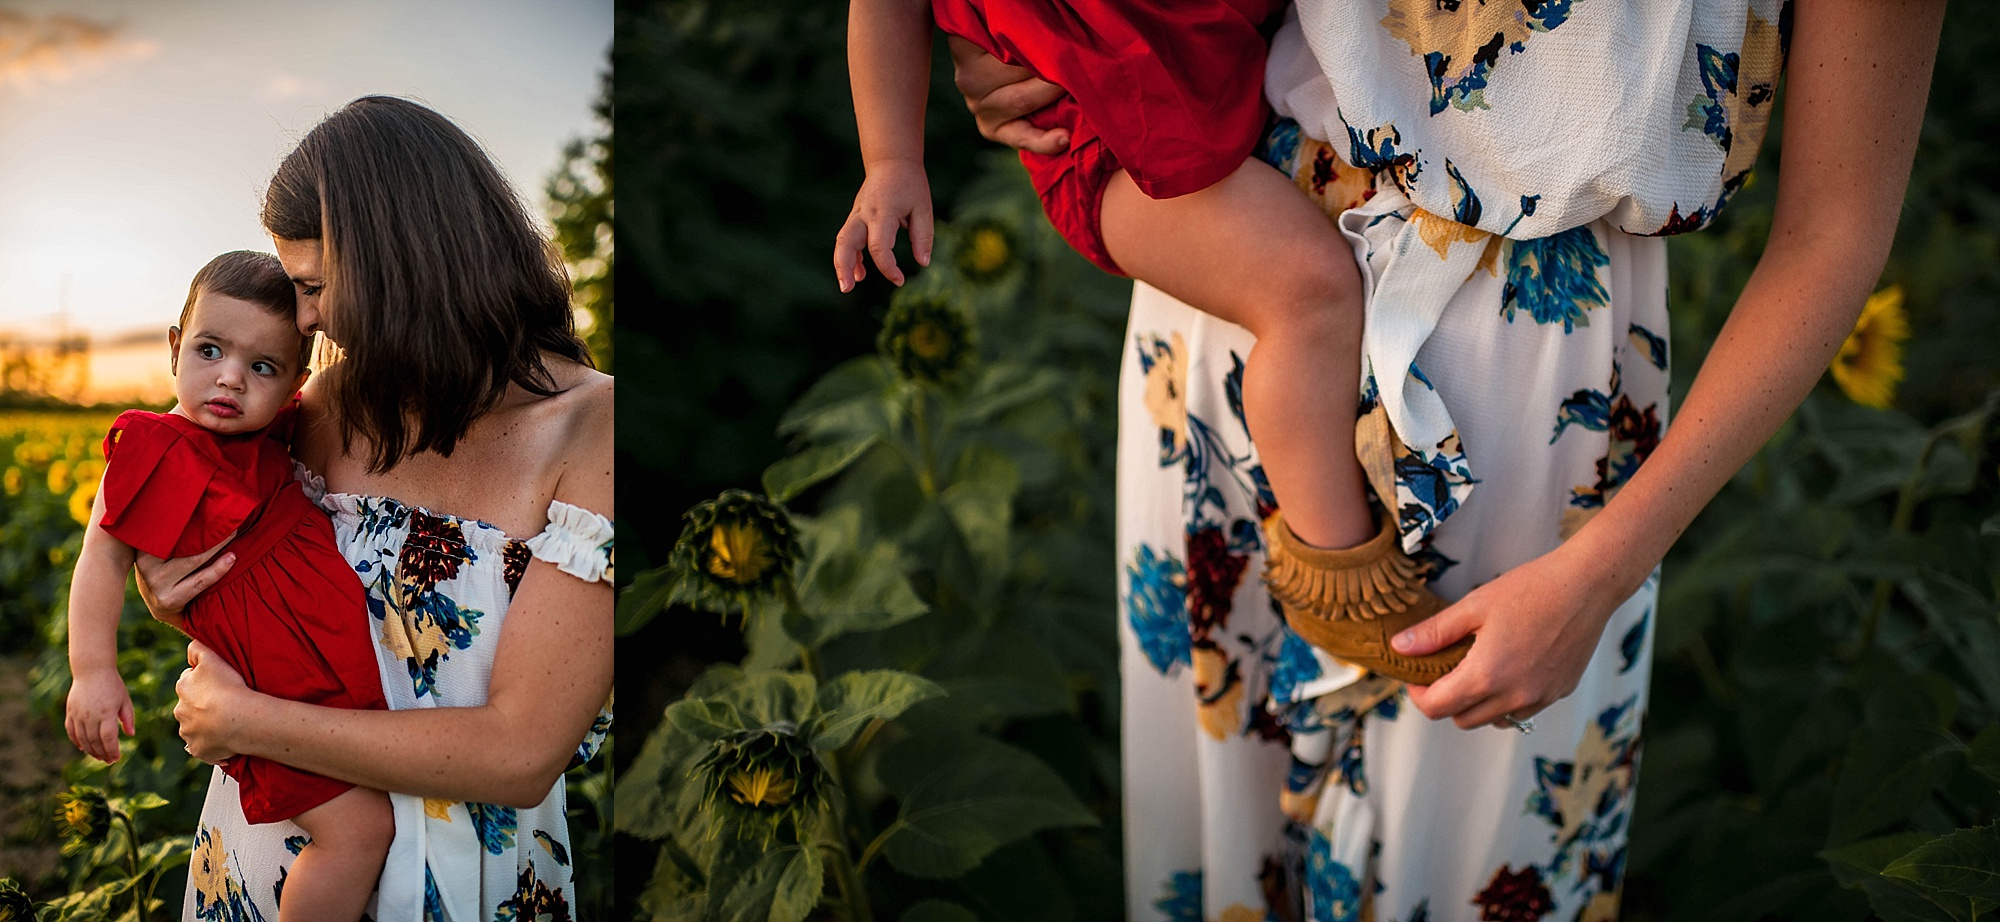 lauren-grayson-photography-cleveland-ohio-photographer-sunflower-fields-sunset-golden-hour-photo-shoot-mommy-and-me-family-child-photographer_0566.jpg